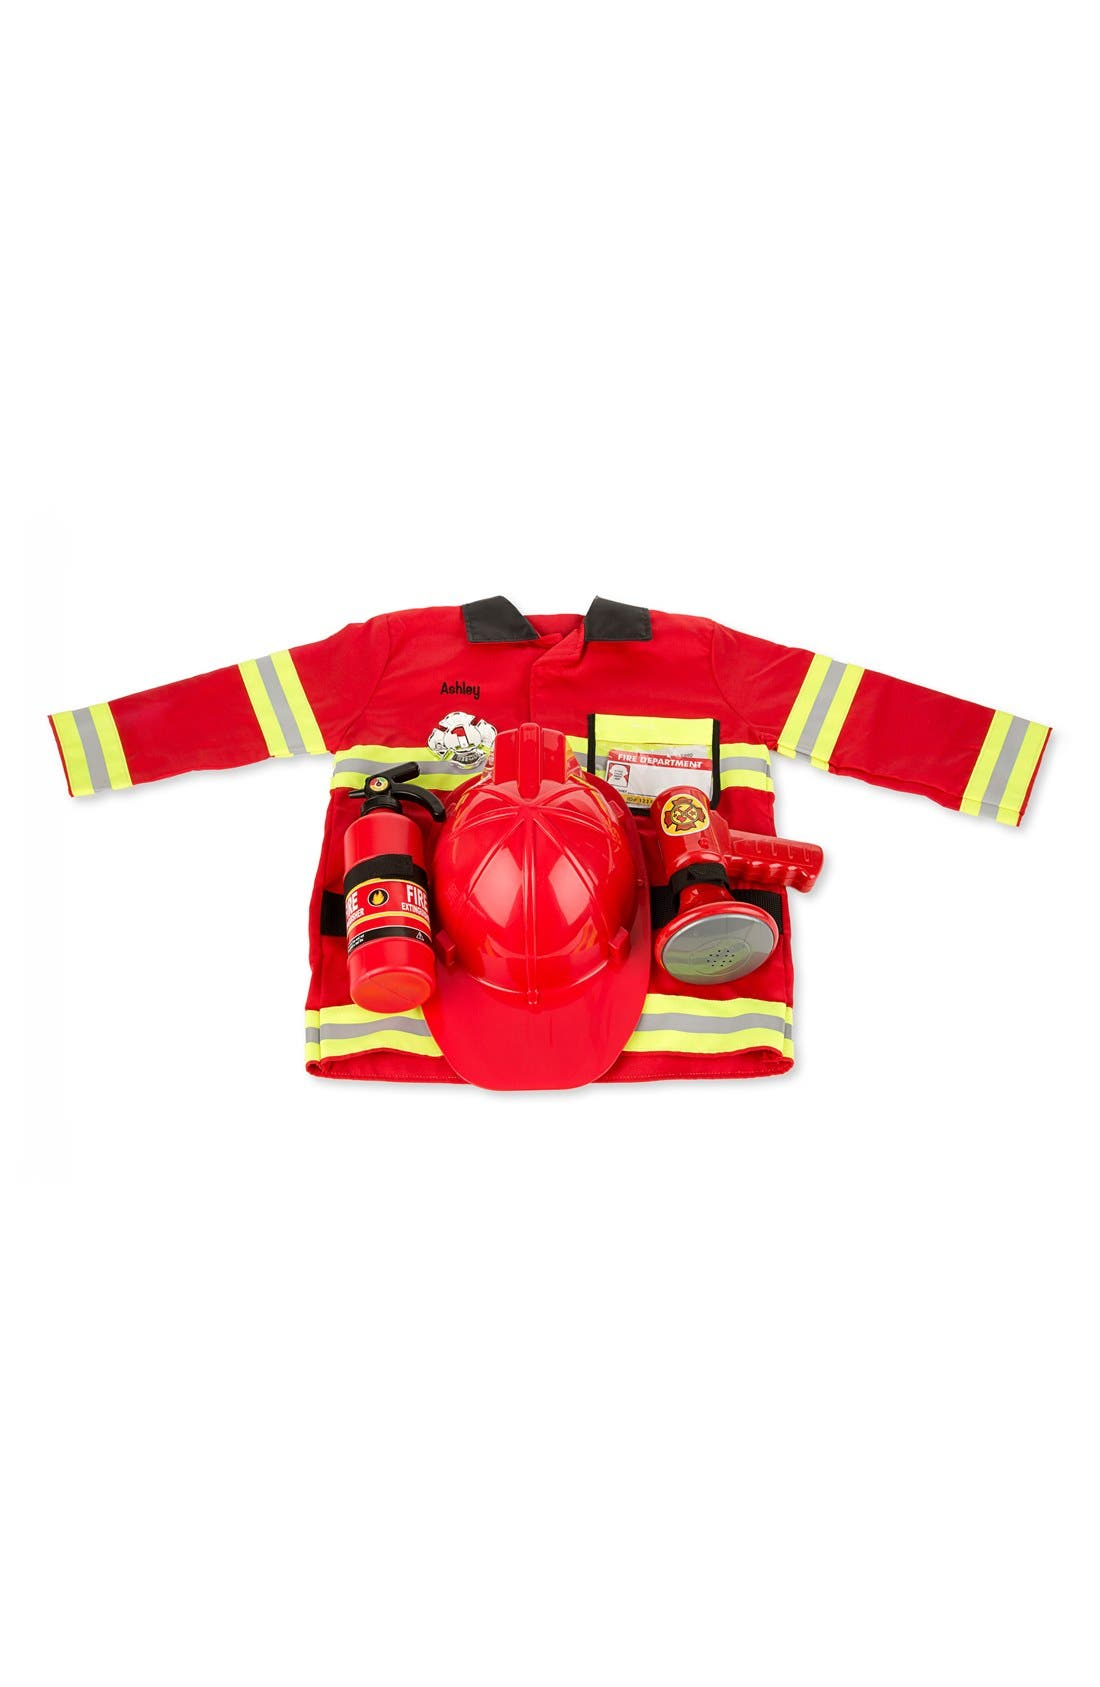 Personalized Fire Chief Costume Set,                             Main thumbnail 1, color,                             RED